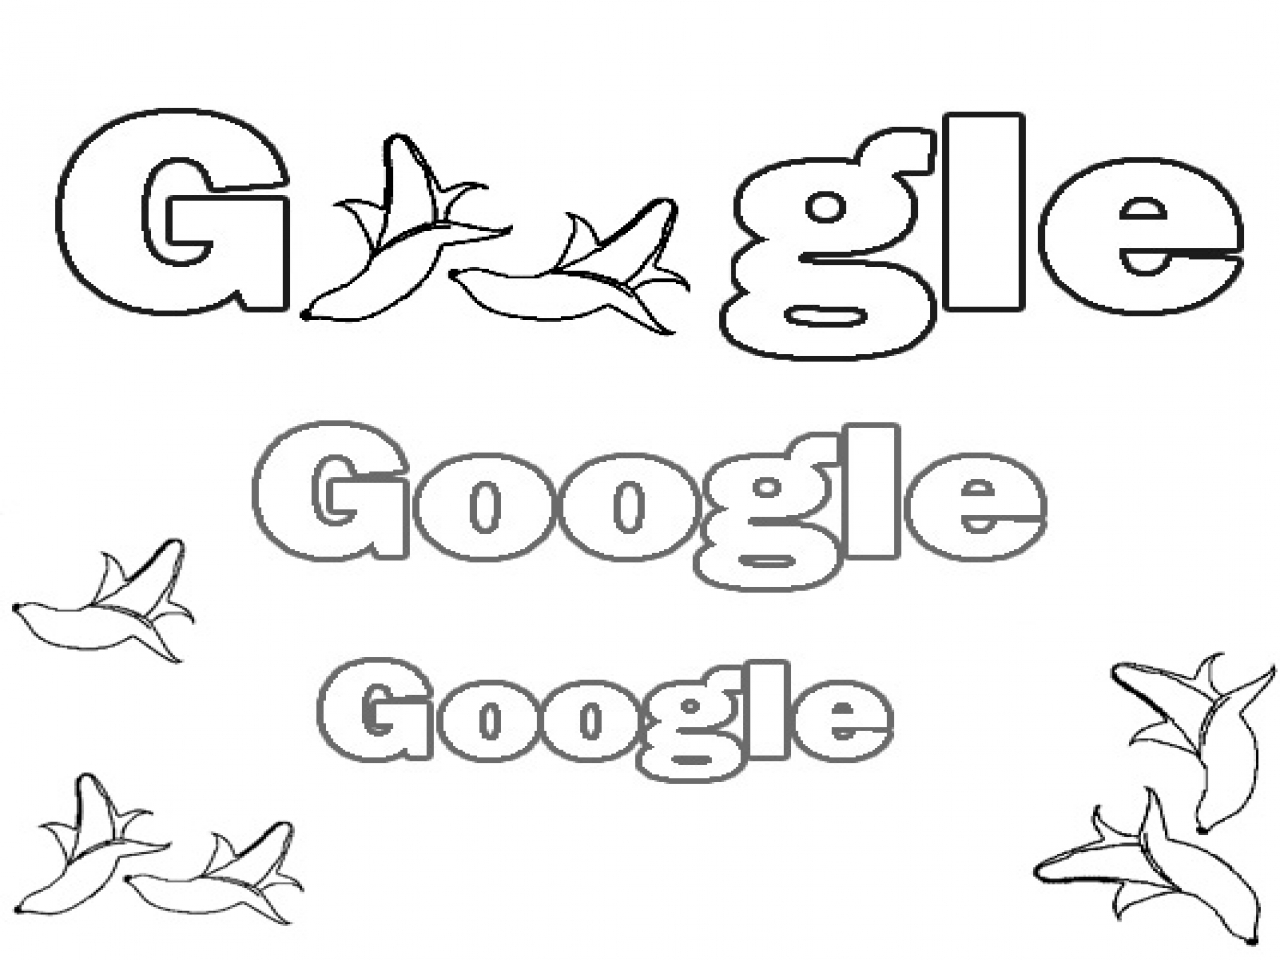 Google Coloring Pages - Download Coloring Pages Google Coloring Pages Google